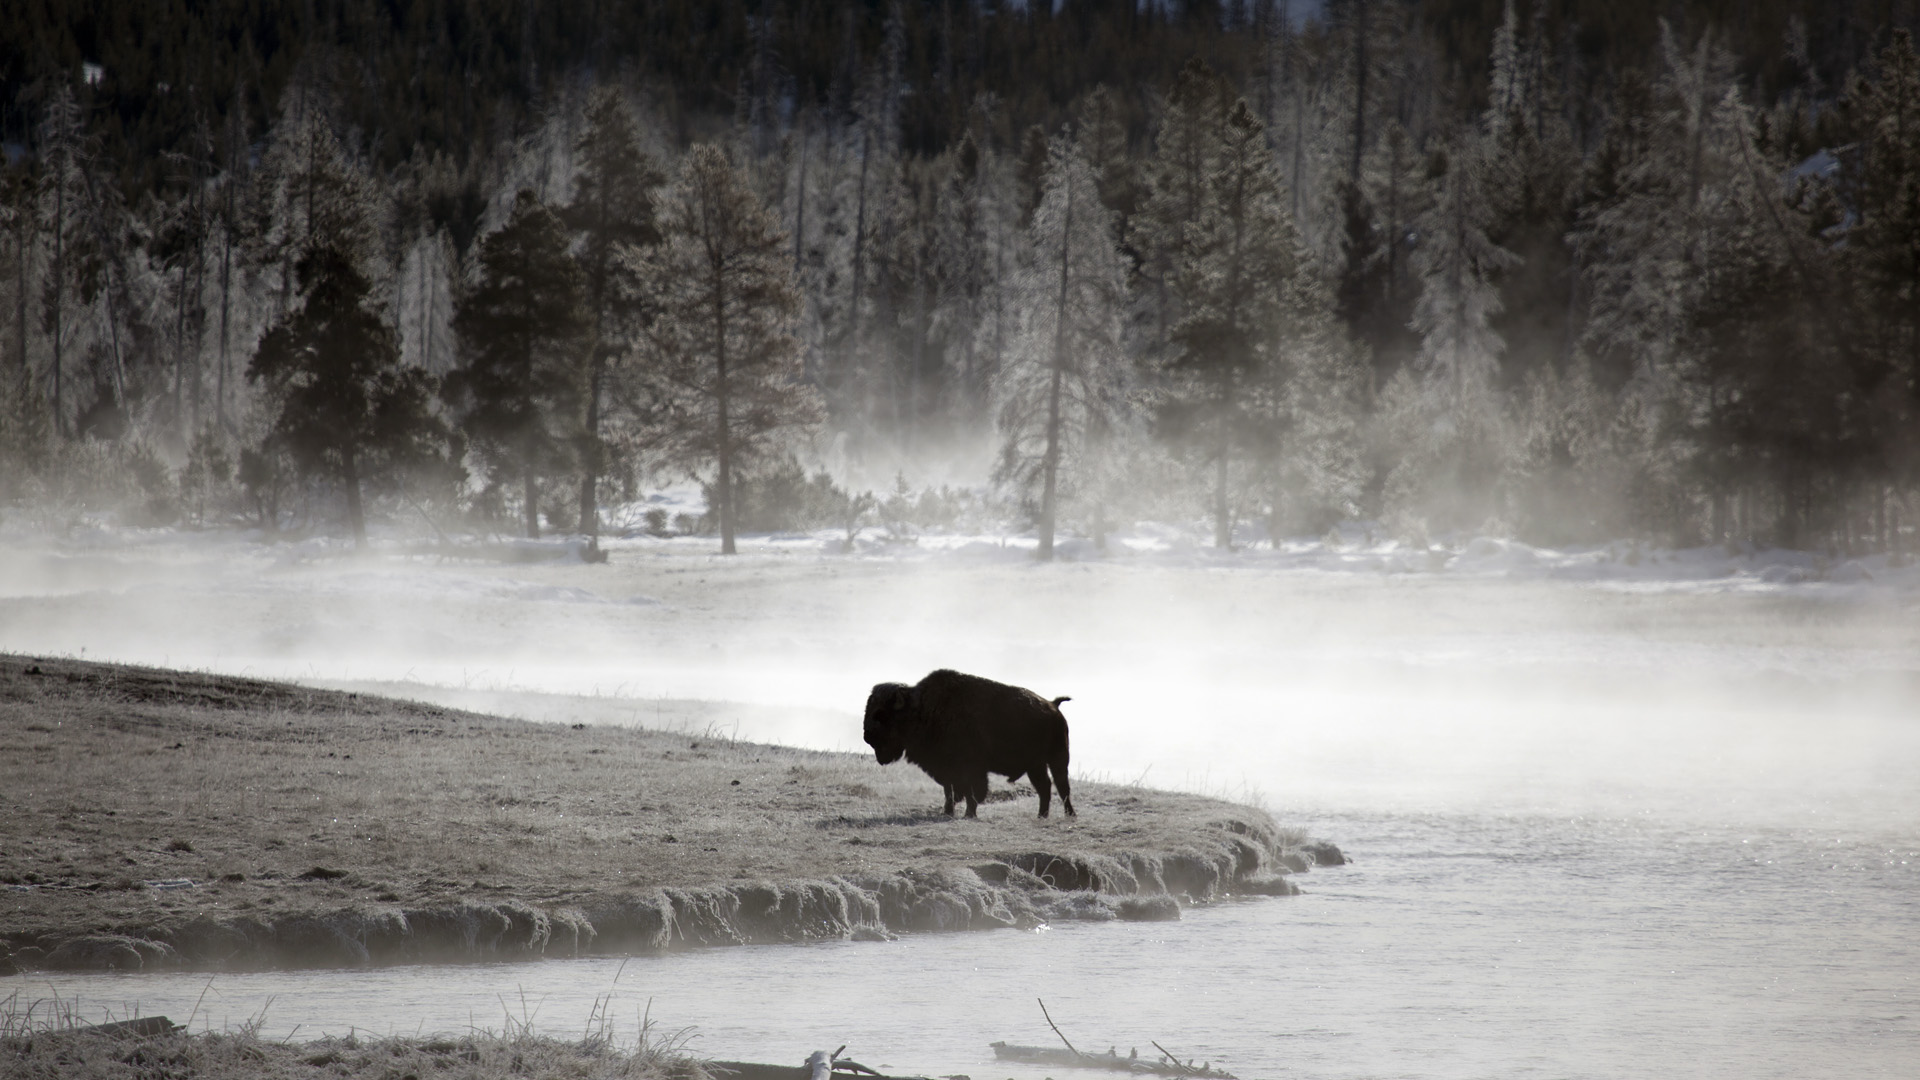 American Bison Full HD Wallpaper And Background Image